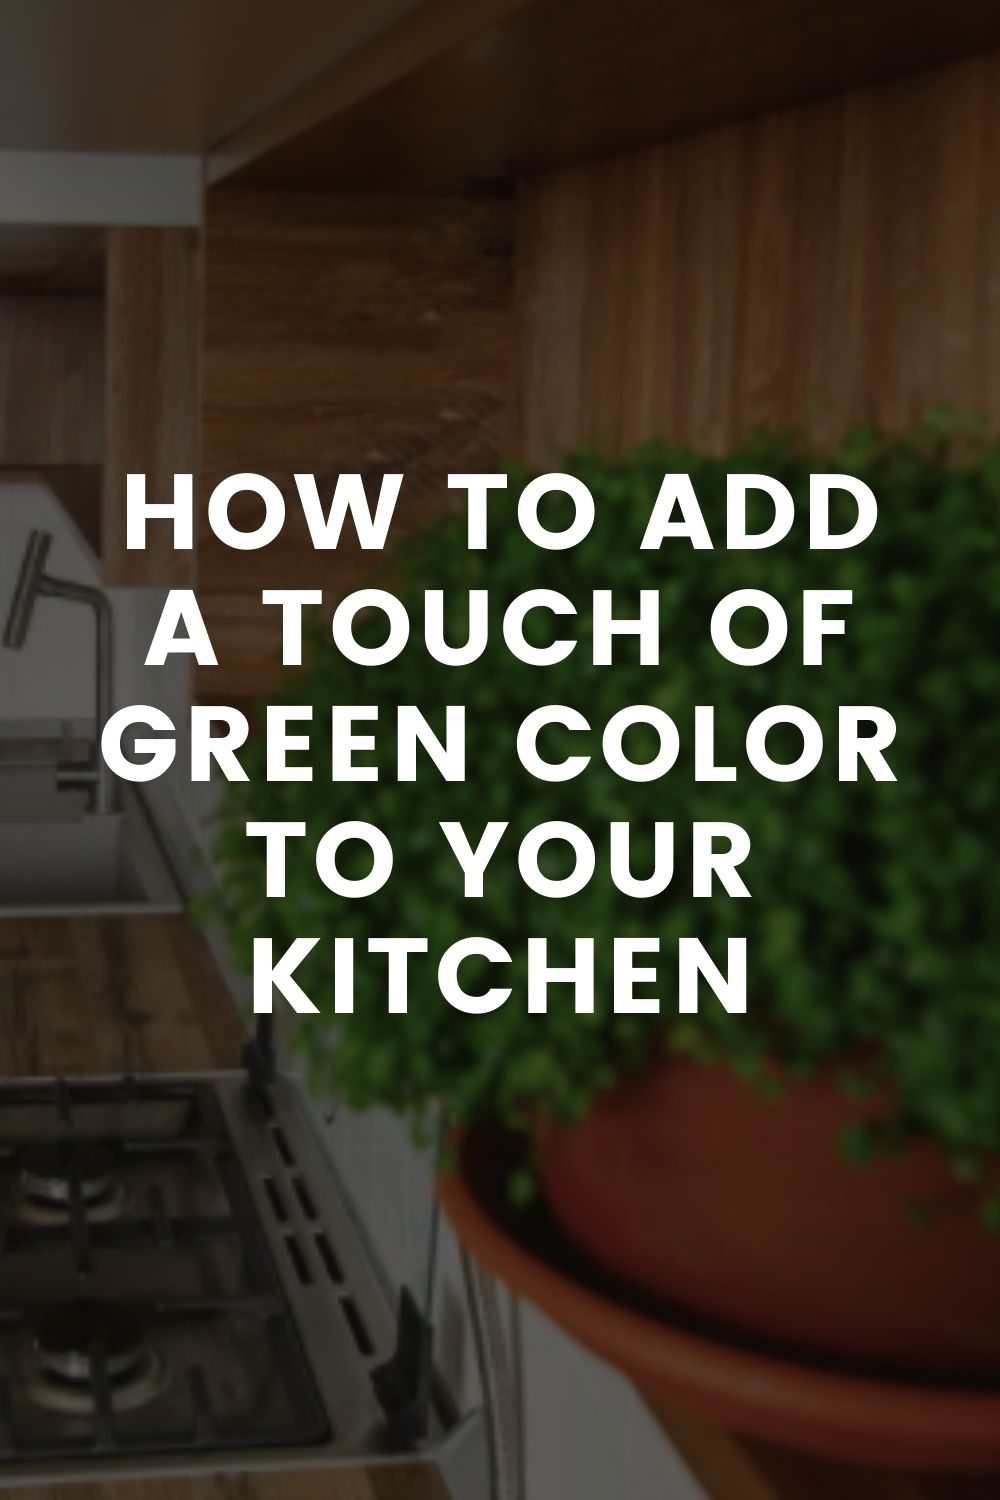 How to Add a Touch of Green Color to Your Kitchen